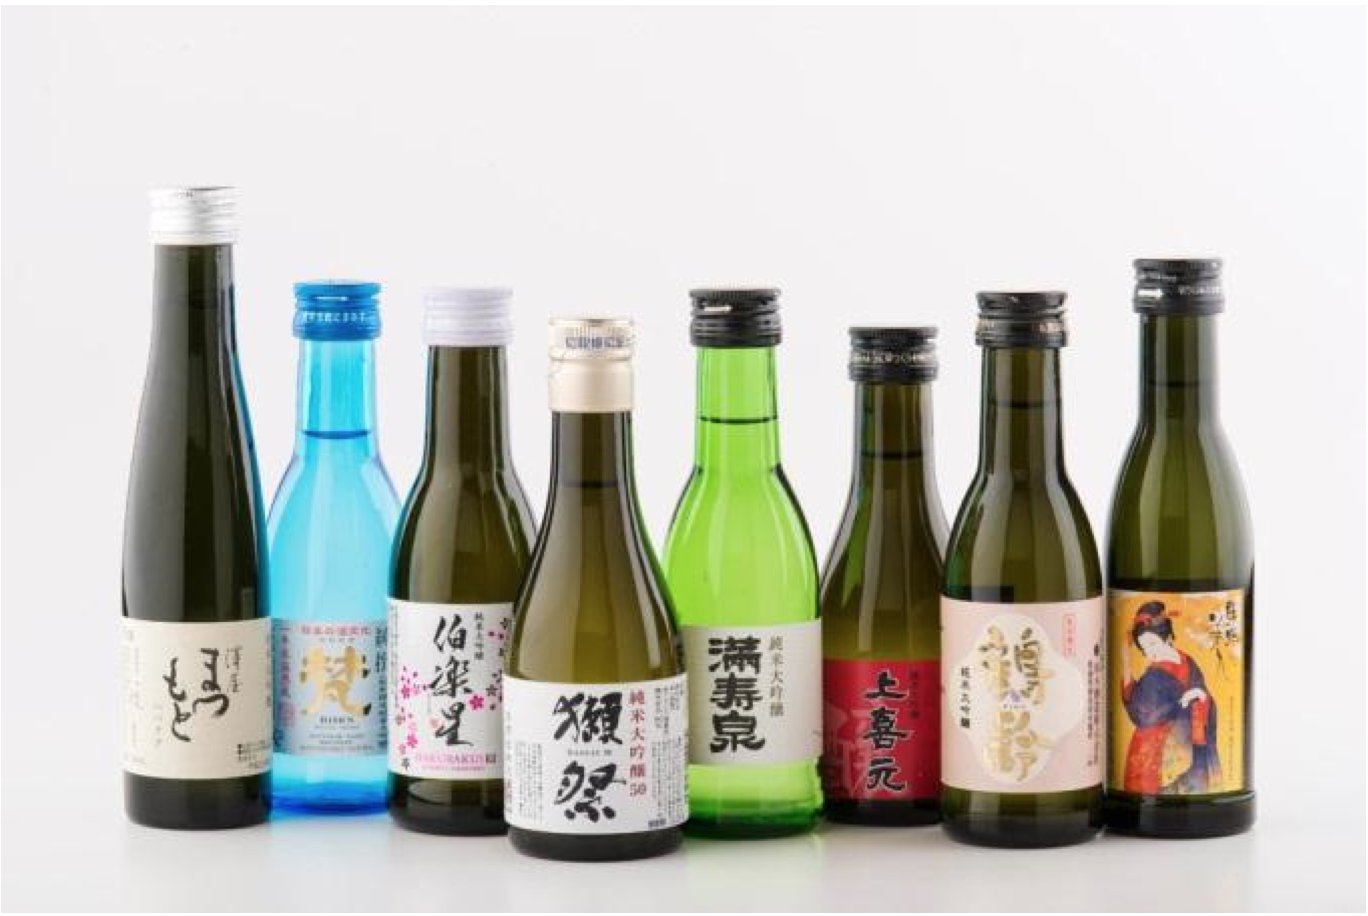 Japanese Sake offered in JAL Business Class